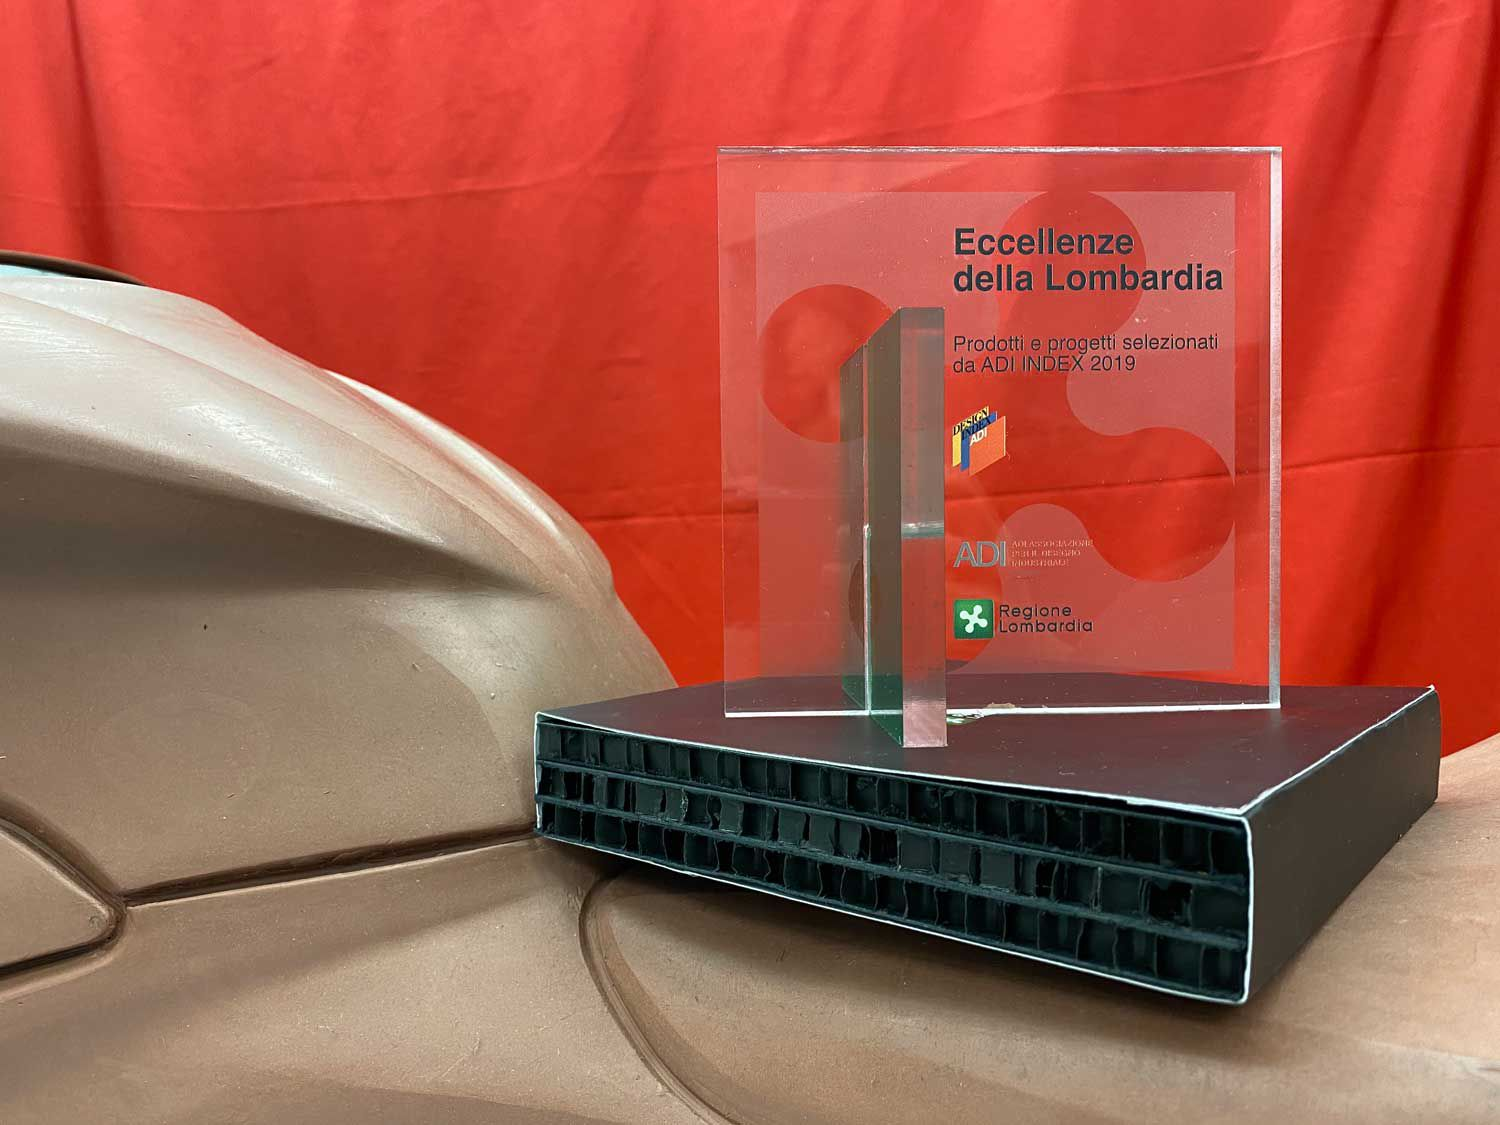 The recognition comes from the prestigious Association for Industrial Design in Italy.